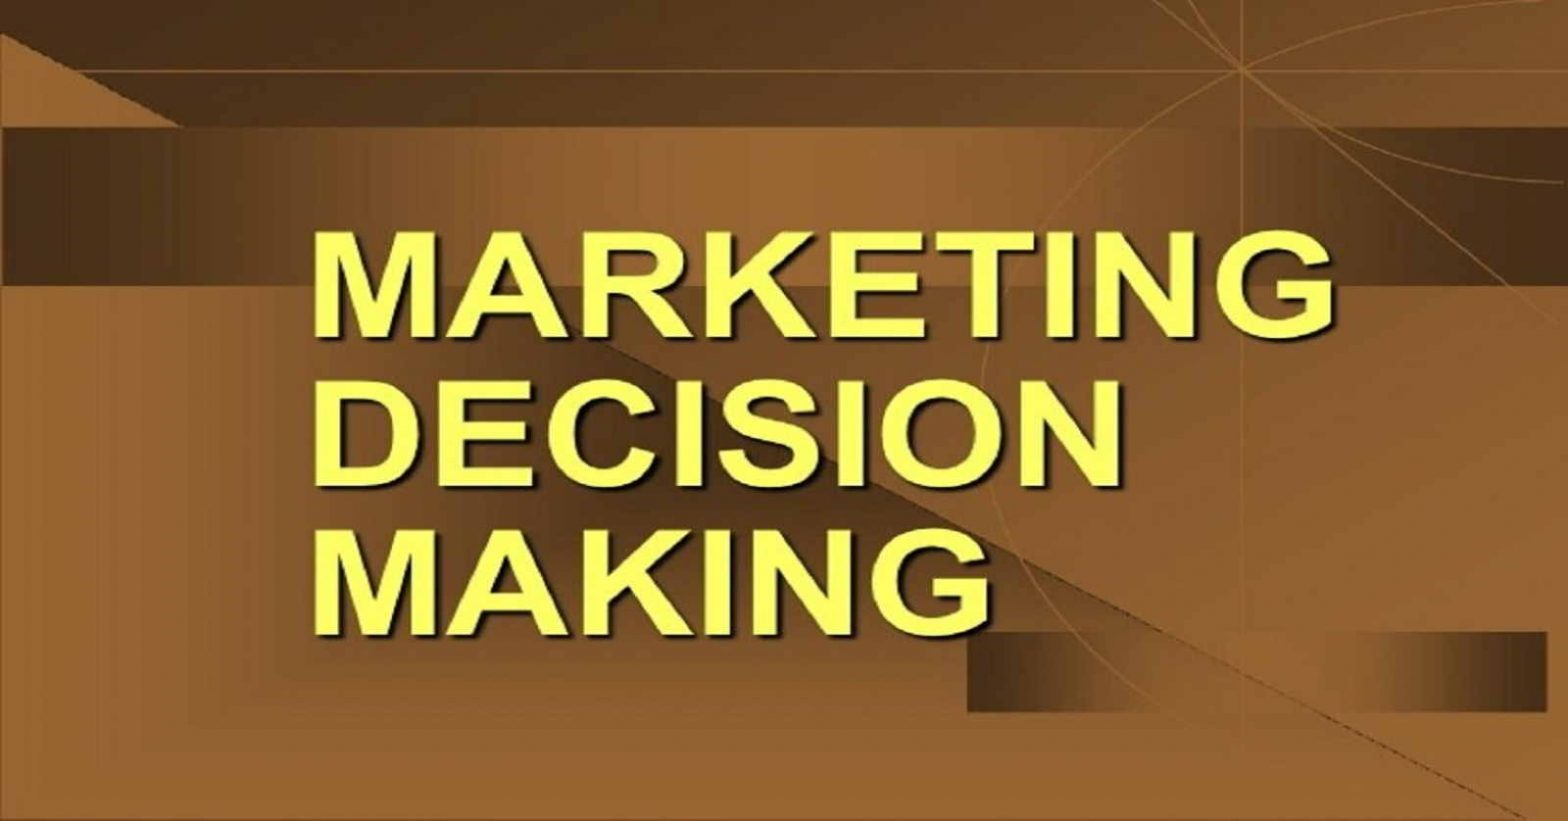 Marketing-by-Making-Decisions-1568x821